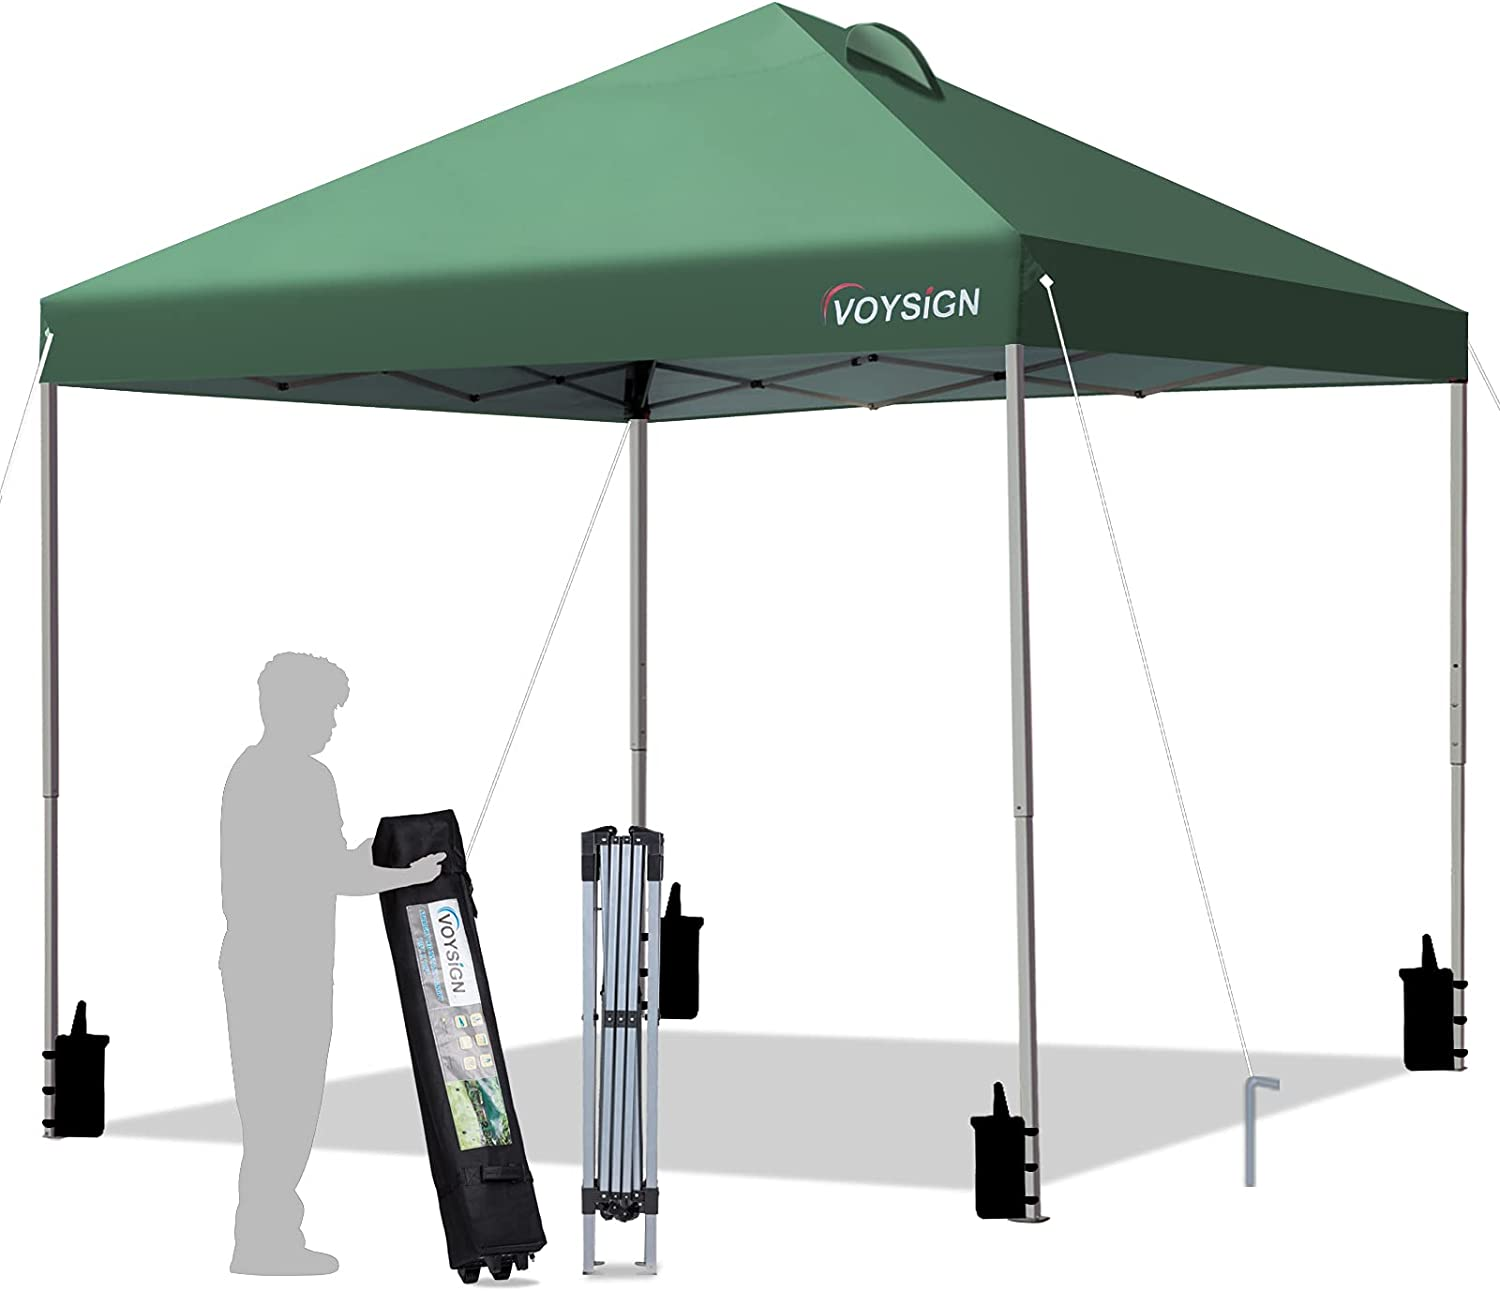 VOYSIGN 10x10 Pop Up Canopy Tent, Outdoor Instant Sun Shelter - Green, Included 1 x Rolling Storage Wheeled Bag, 4 x Weights Bags, 4 x Guylines, 8 x Stakes (Green)